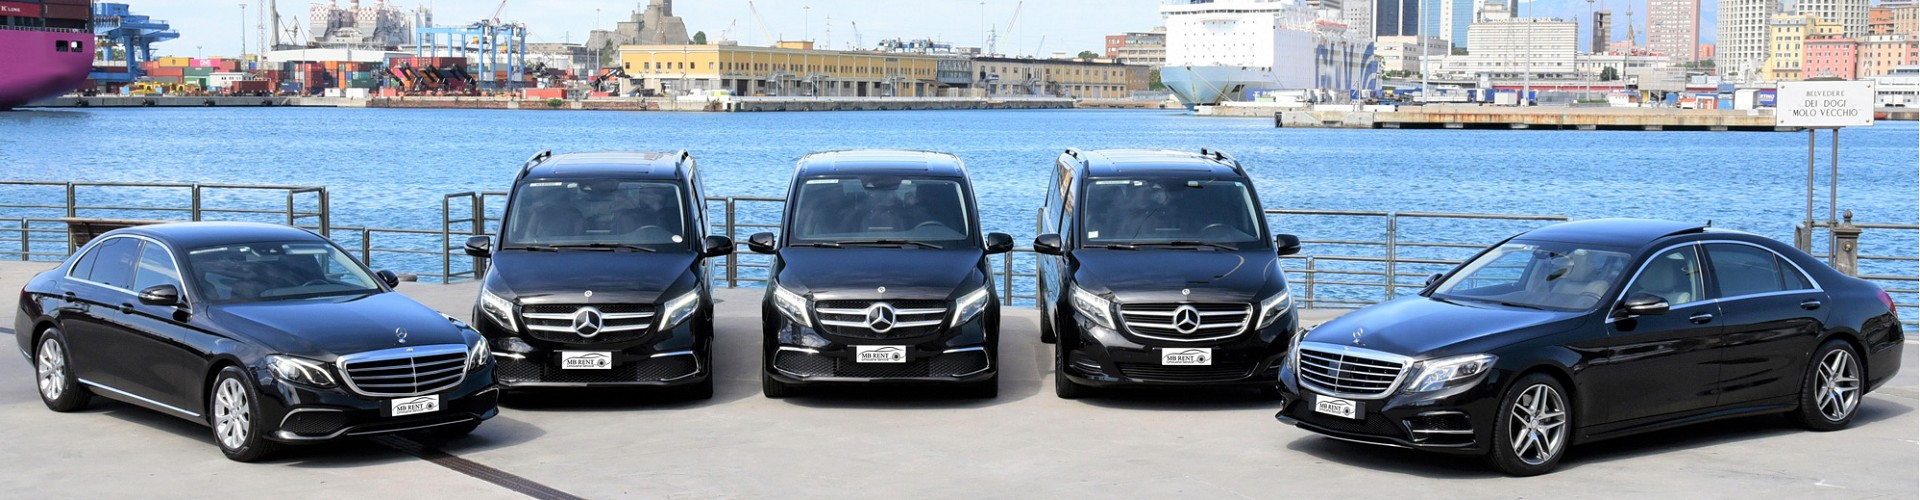 Limousine Service Genoa | Car Rental with Driver Genoa | Limousine Service Portofino | Chauffeur Service Milan